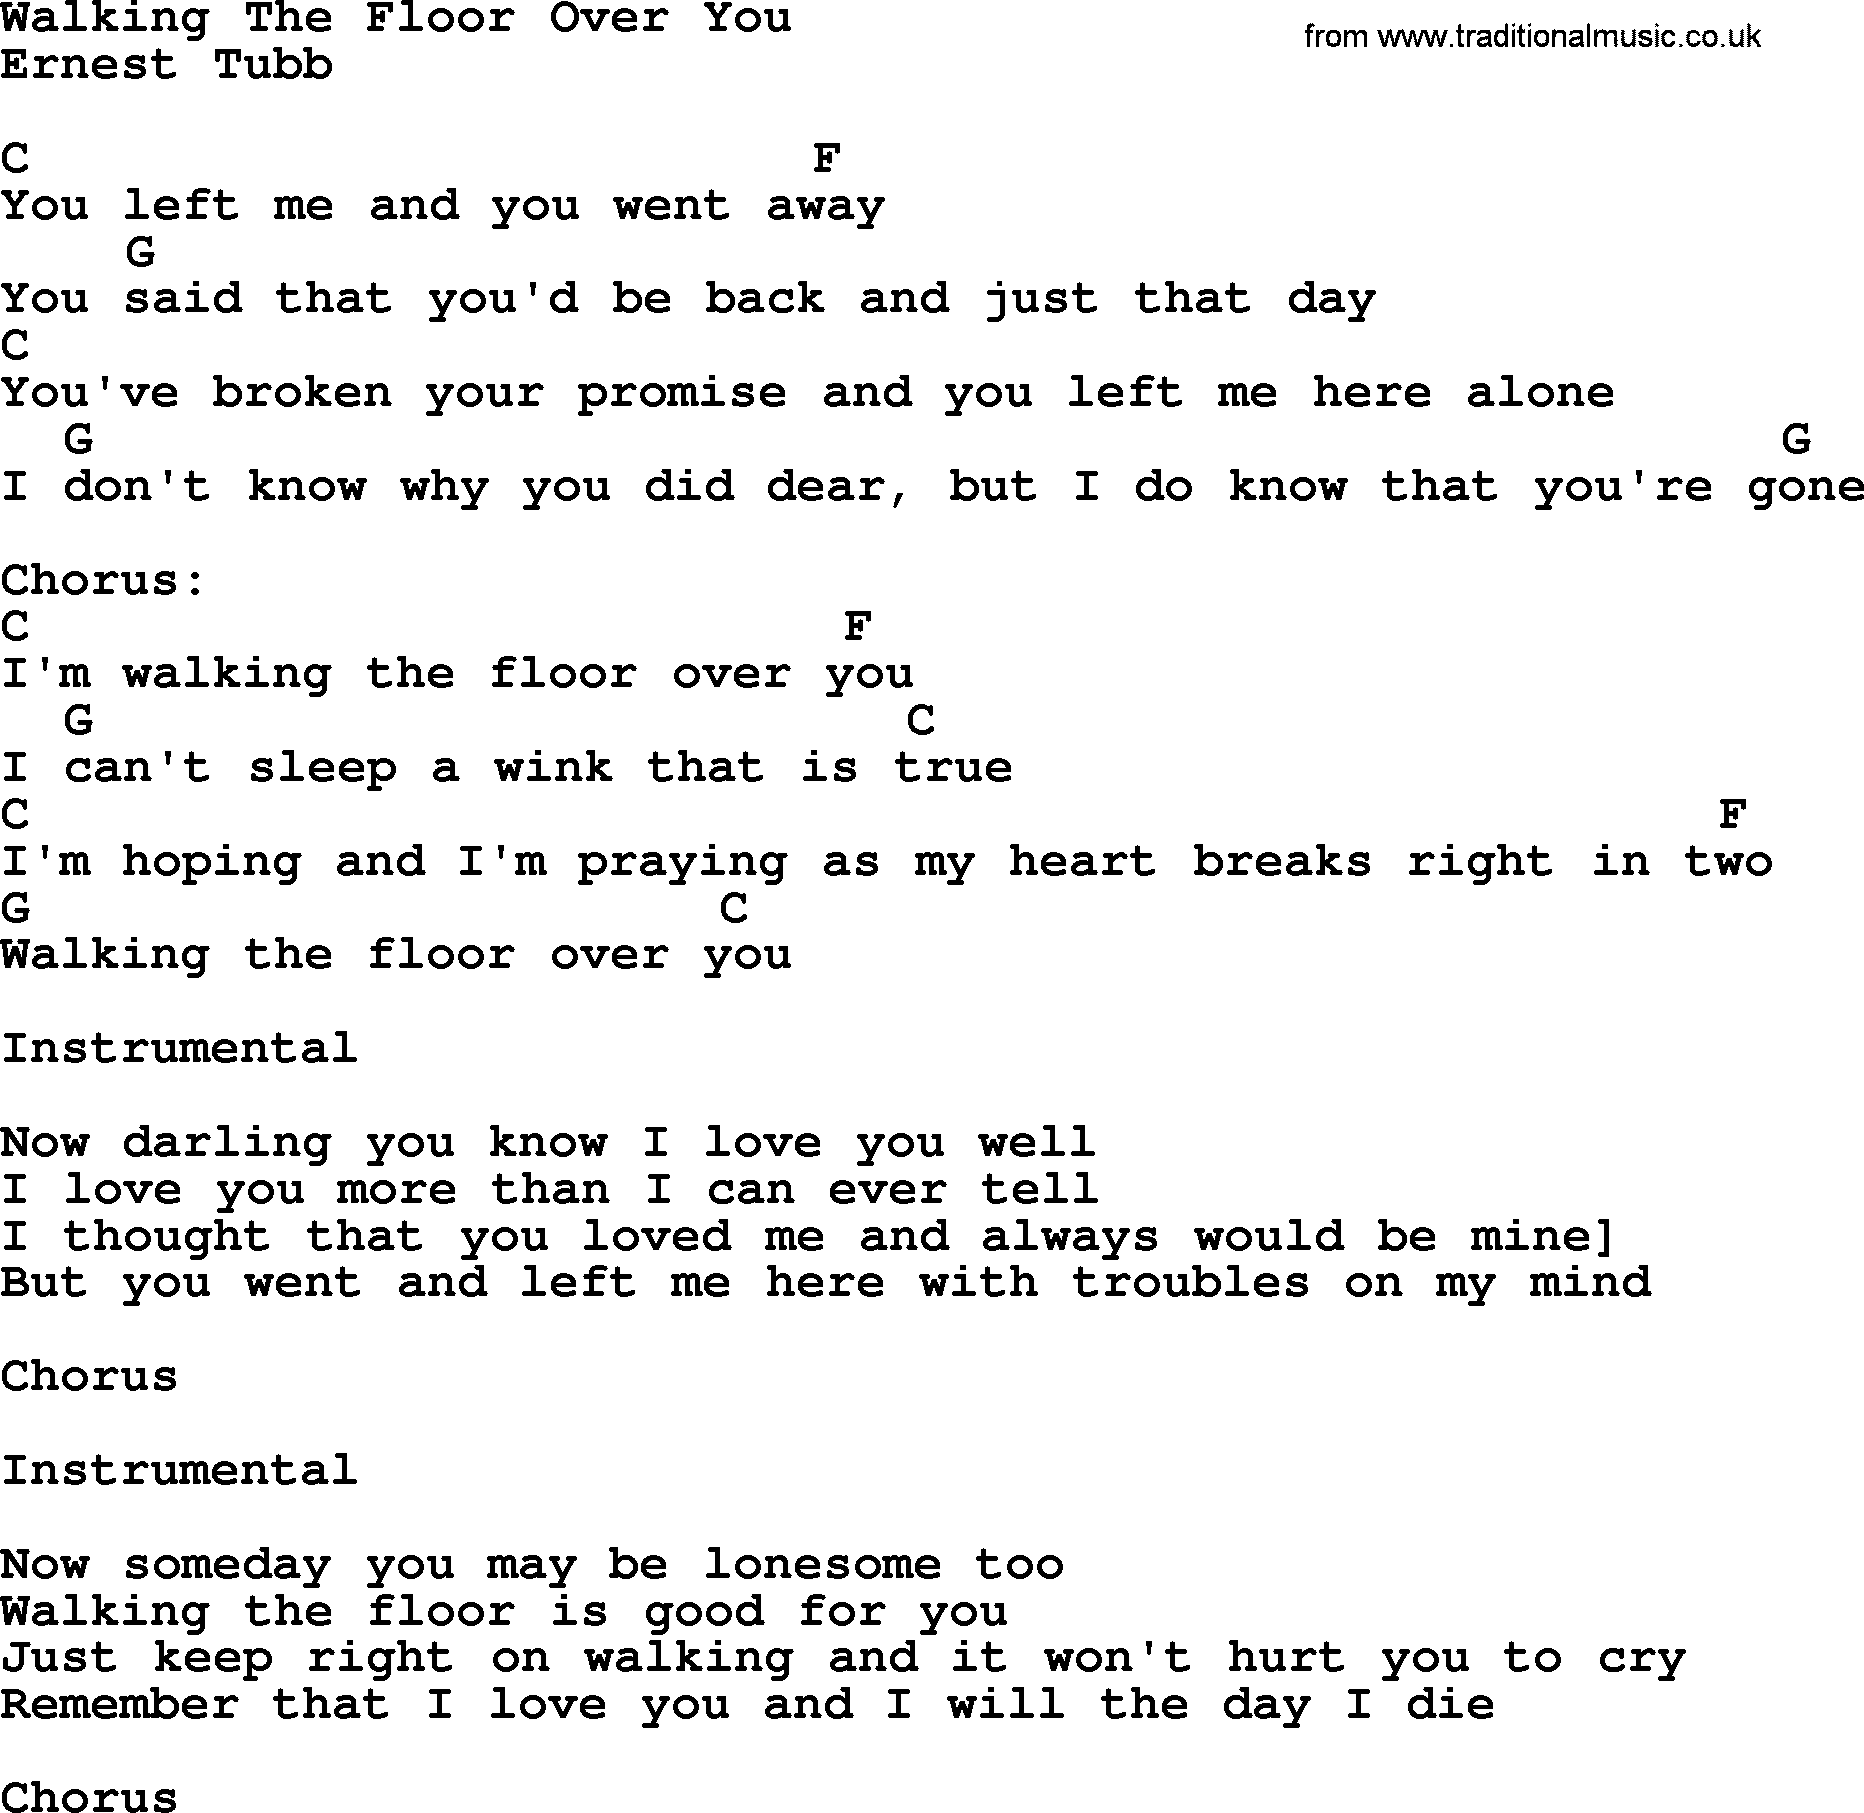 Bluegrass Song: Walking The Floor Over You, Lyrics And Chords